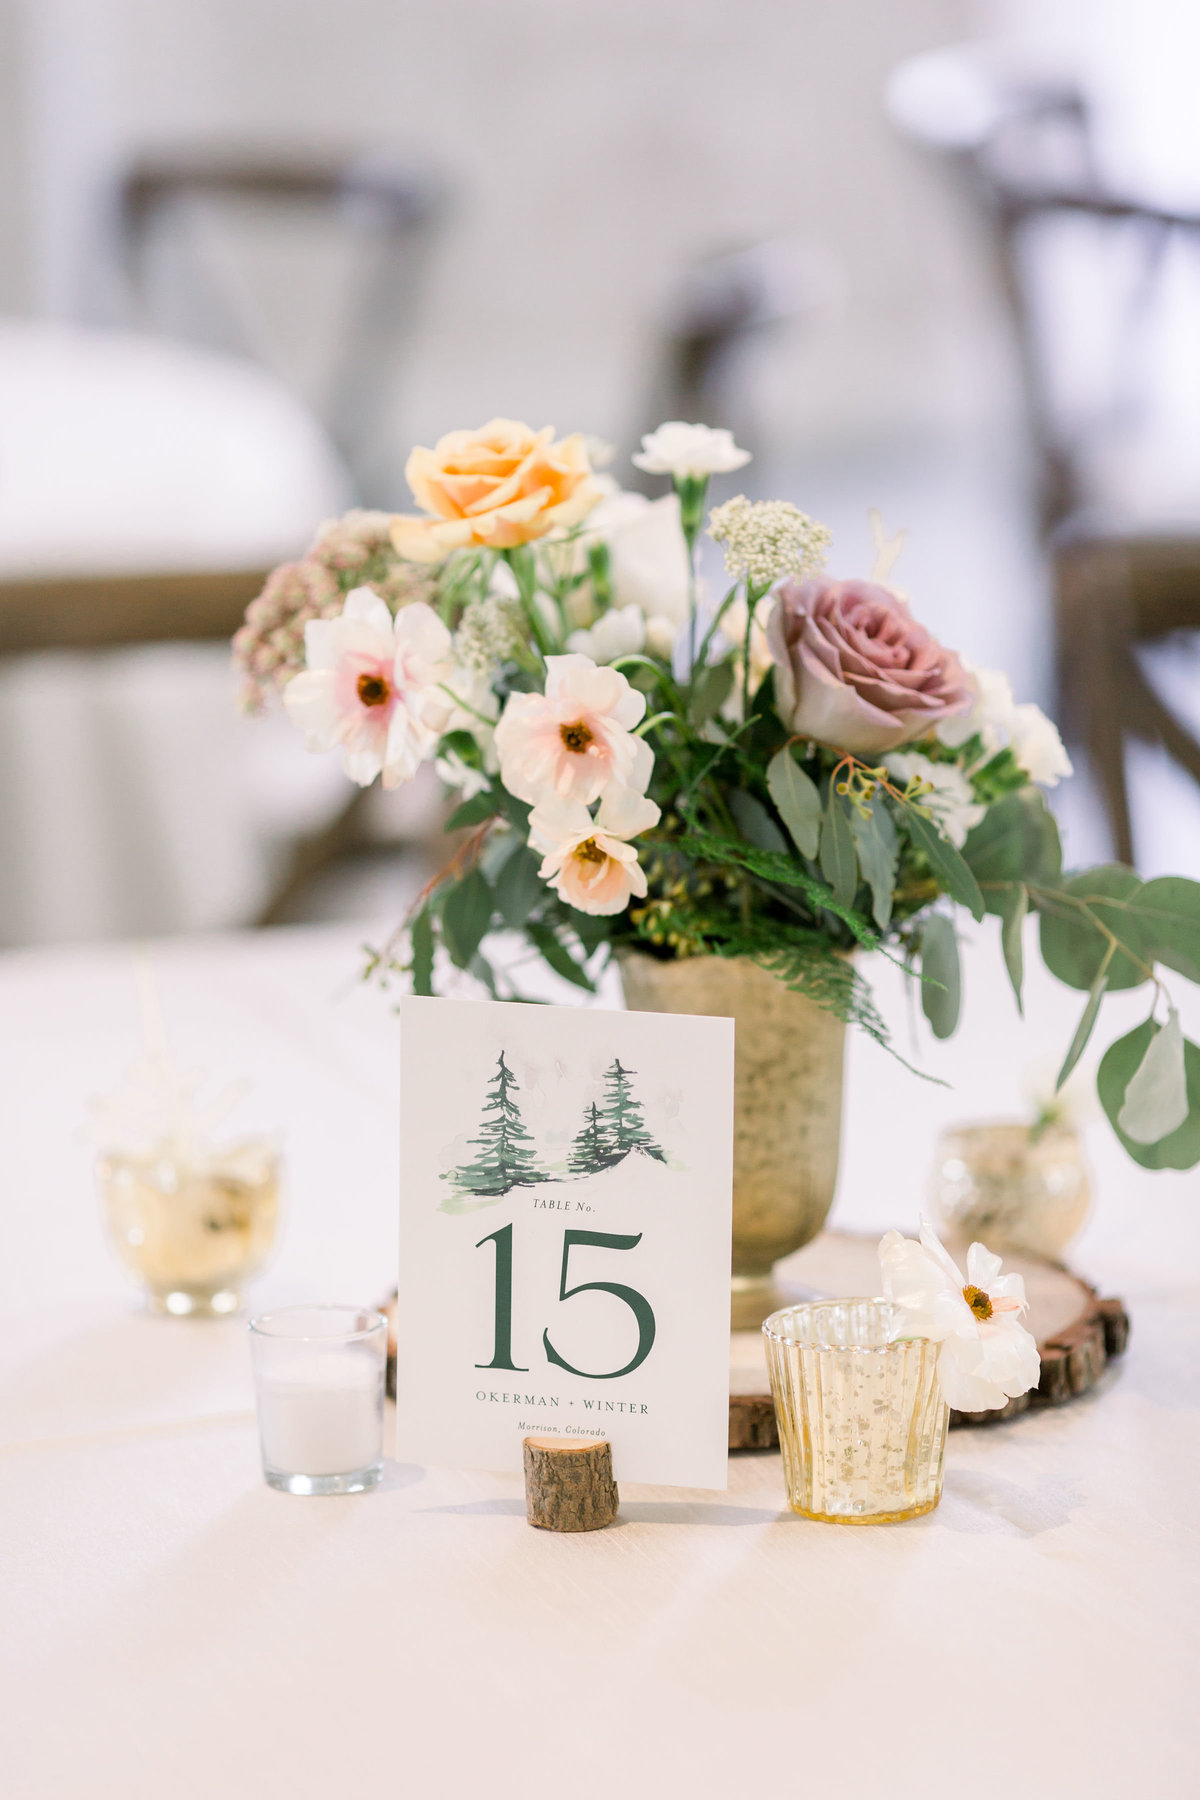 Wedding tablescape and table number detail